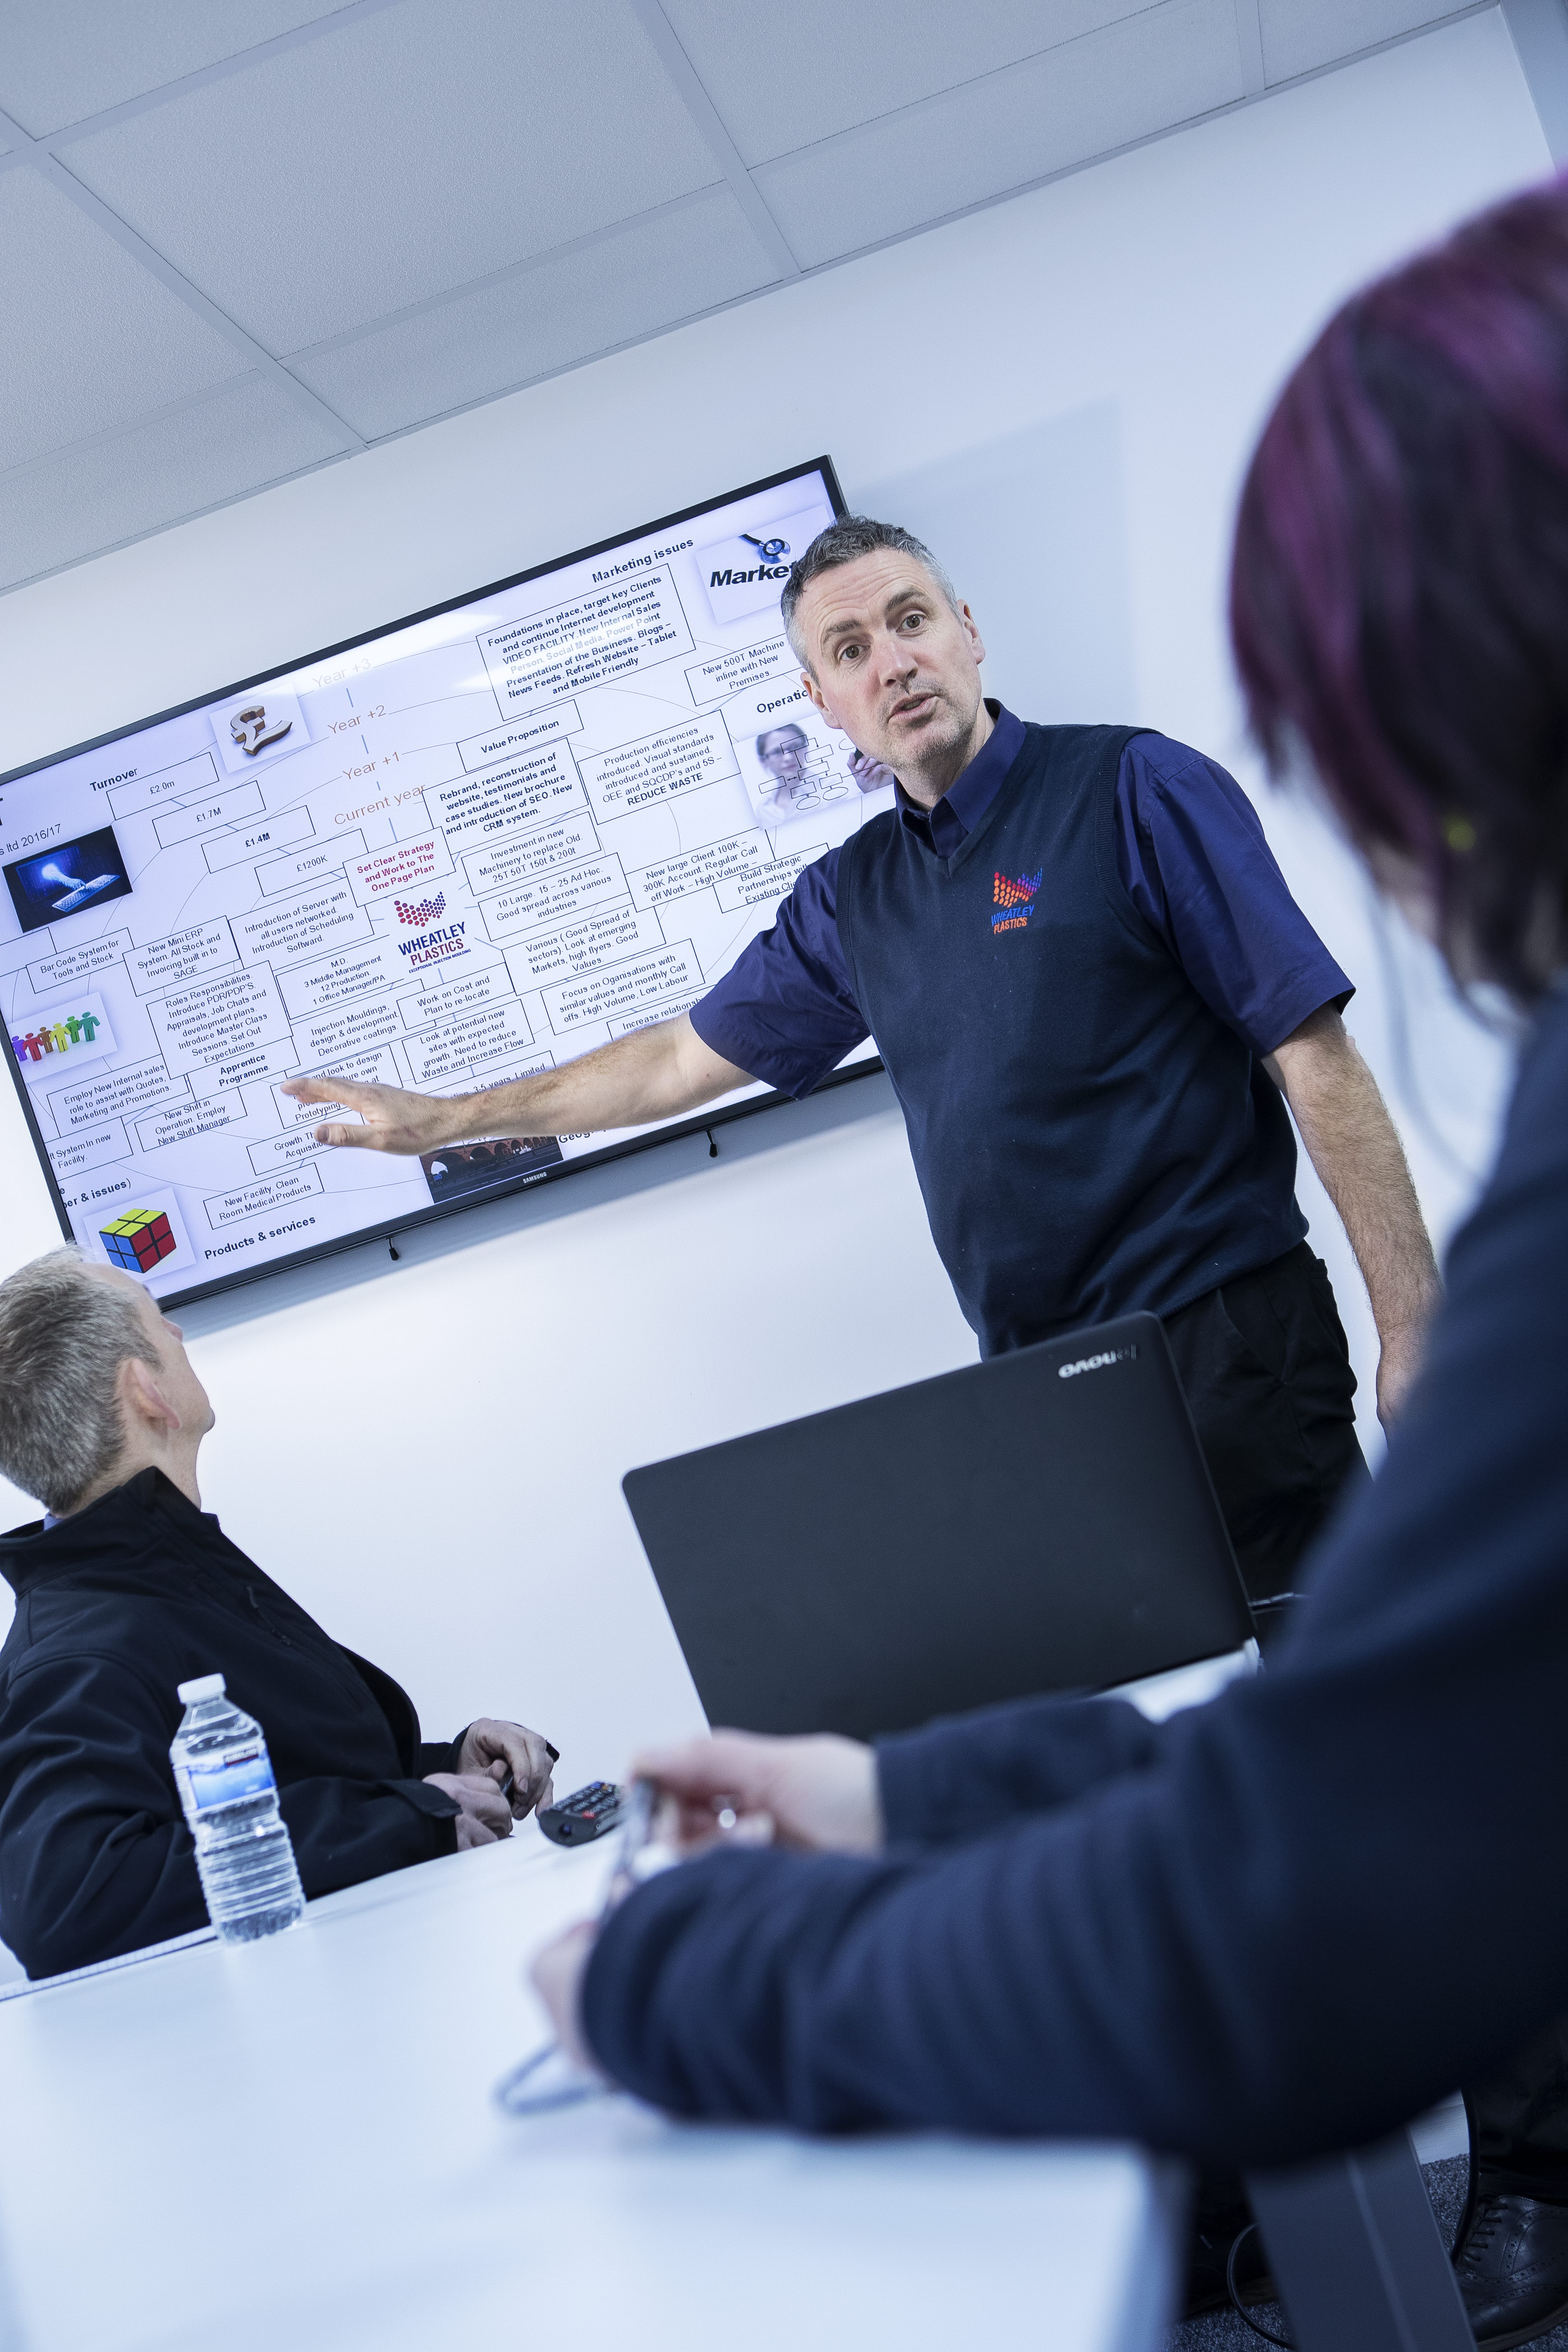 Wheatley Plastics using visual management